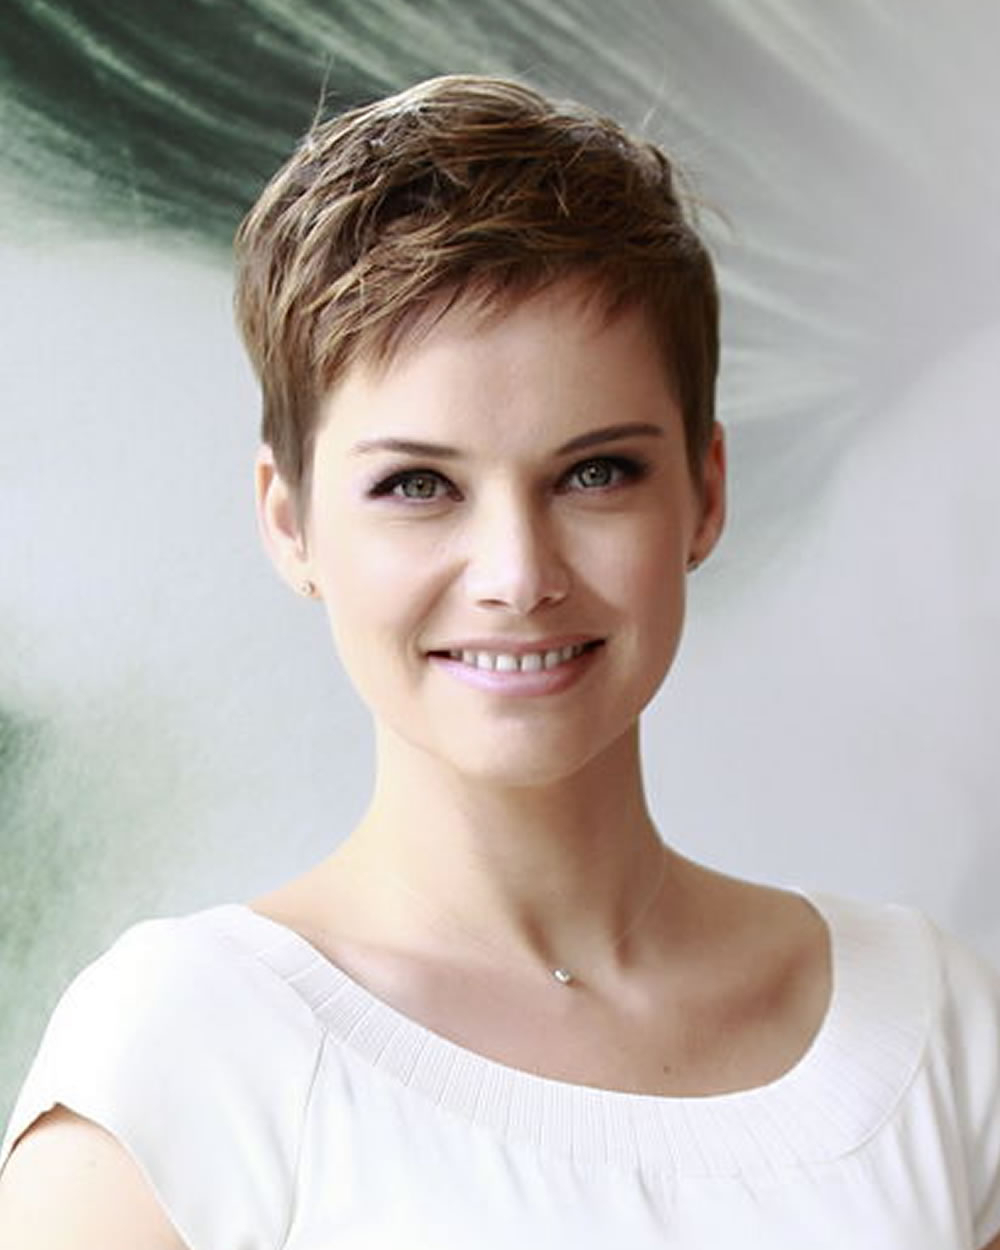 21 Trendy Short Haircut Images And Pixie Hairstyles You'll Really Pertaining To Trendy Short Hair Cuts (View 7 of 25)